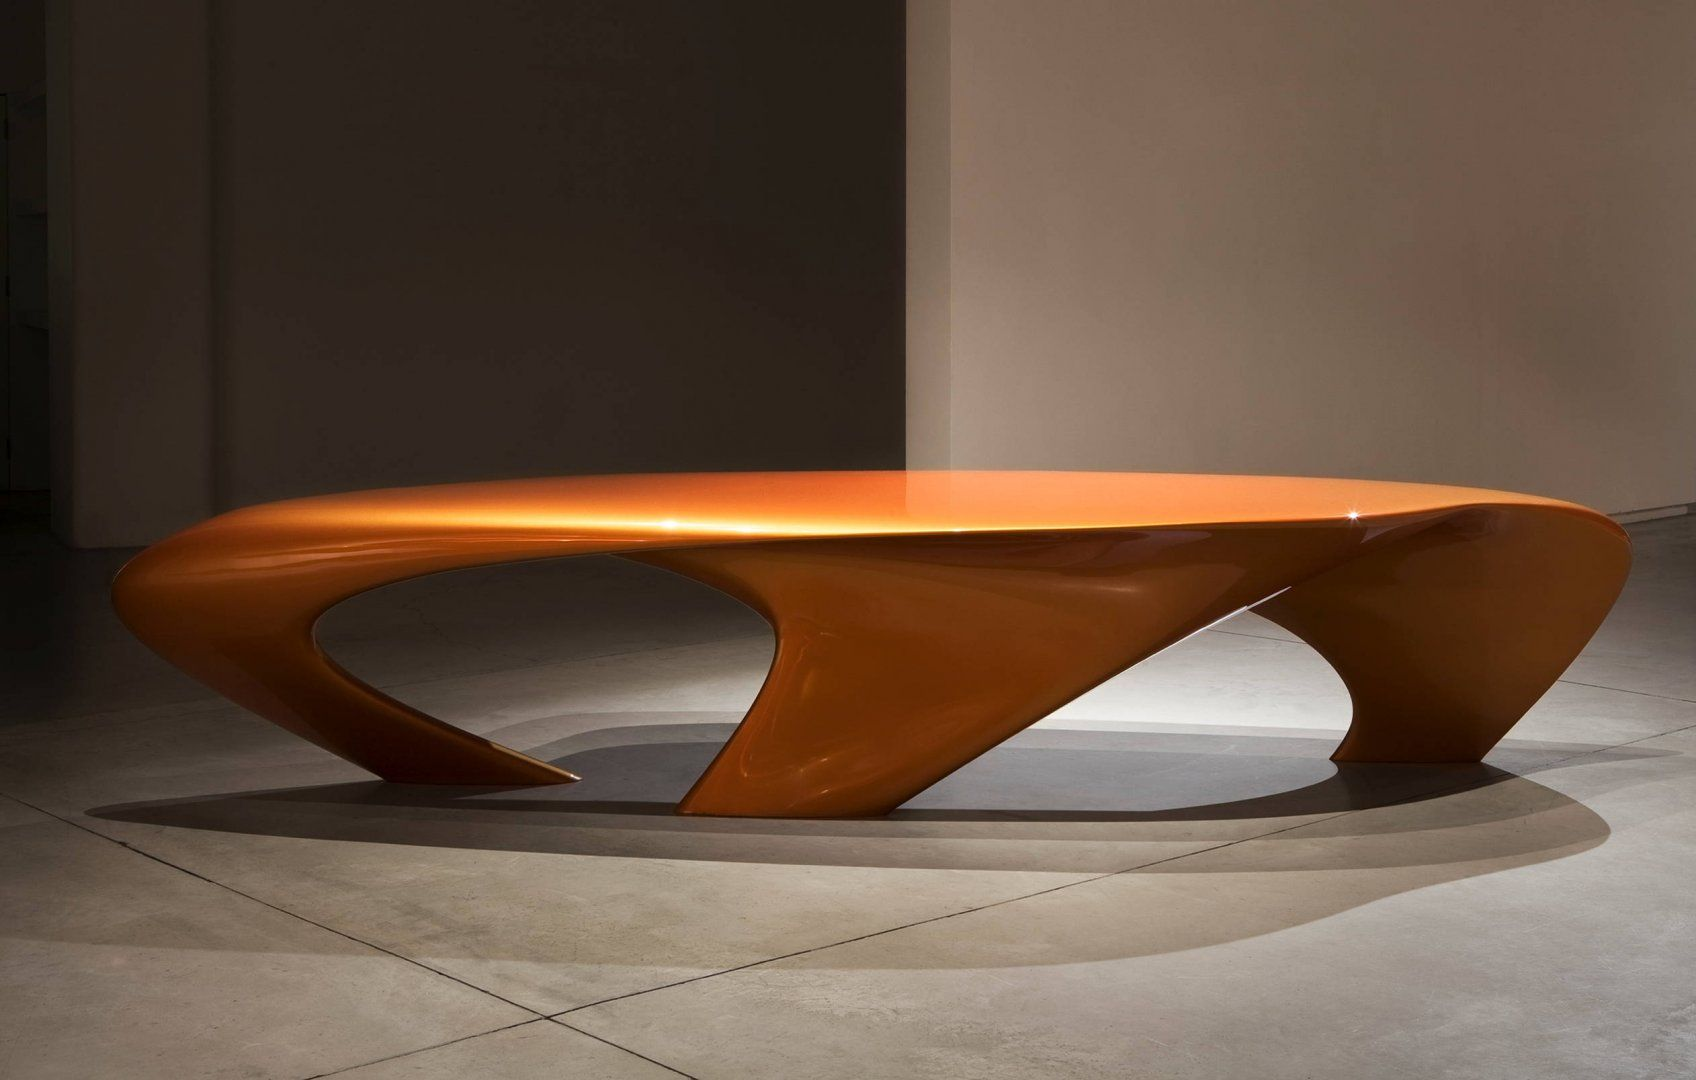 Cool Futuristic Furniture Zaha Hadid 39s Quotdune Formations Quot Design Pinterest 테이블